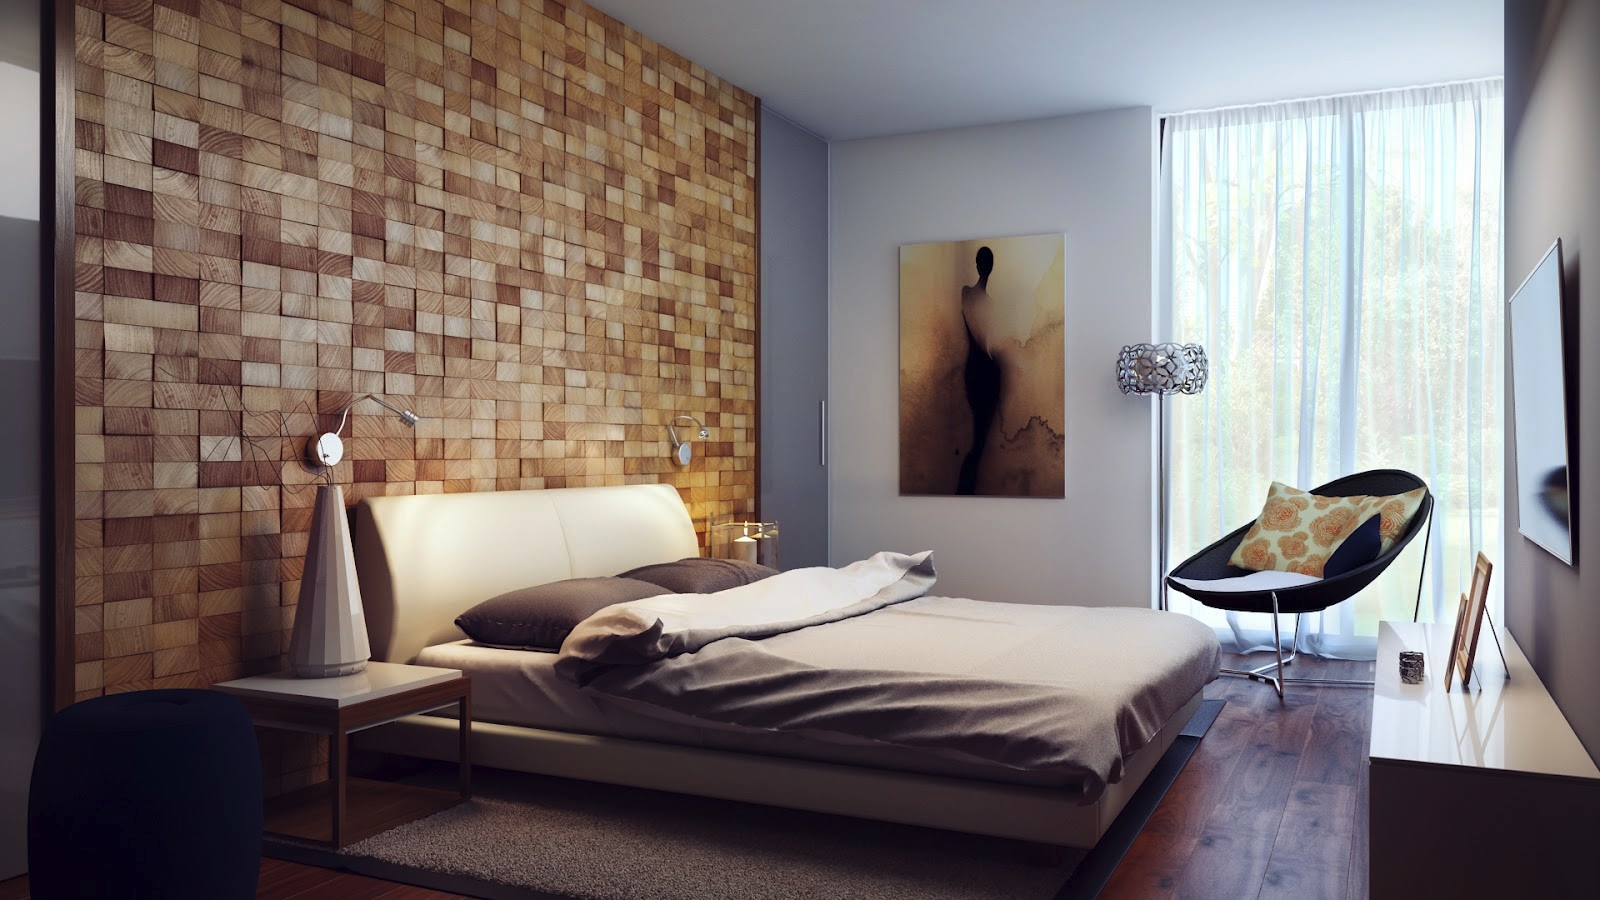 Bedroom Amazing Brick Alike Wooden Wall Covering Headboard